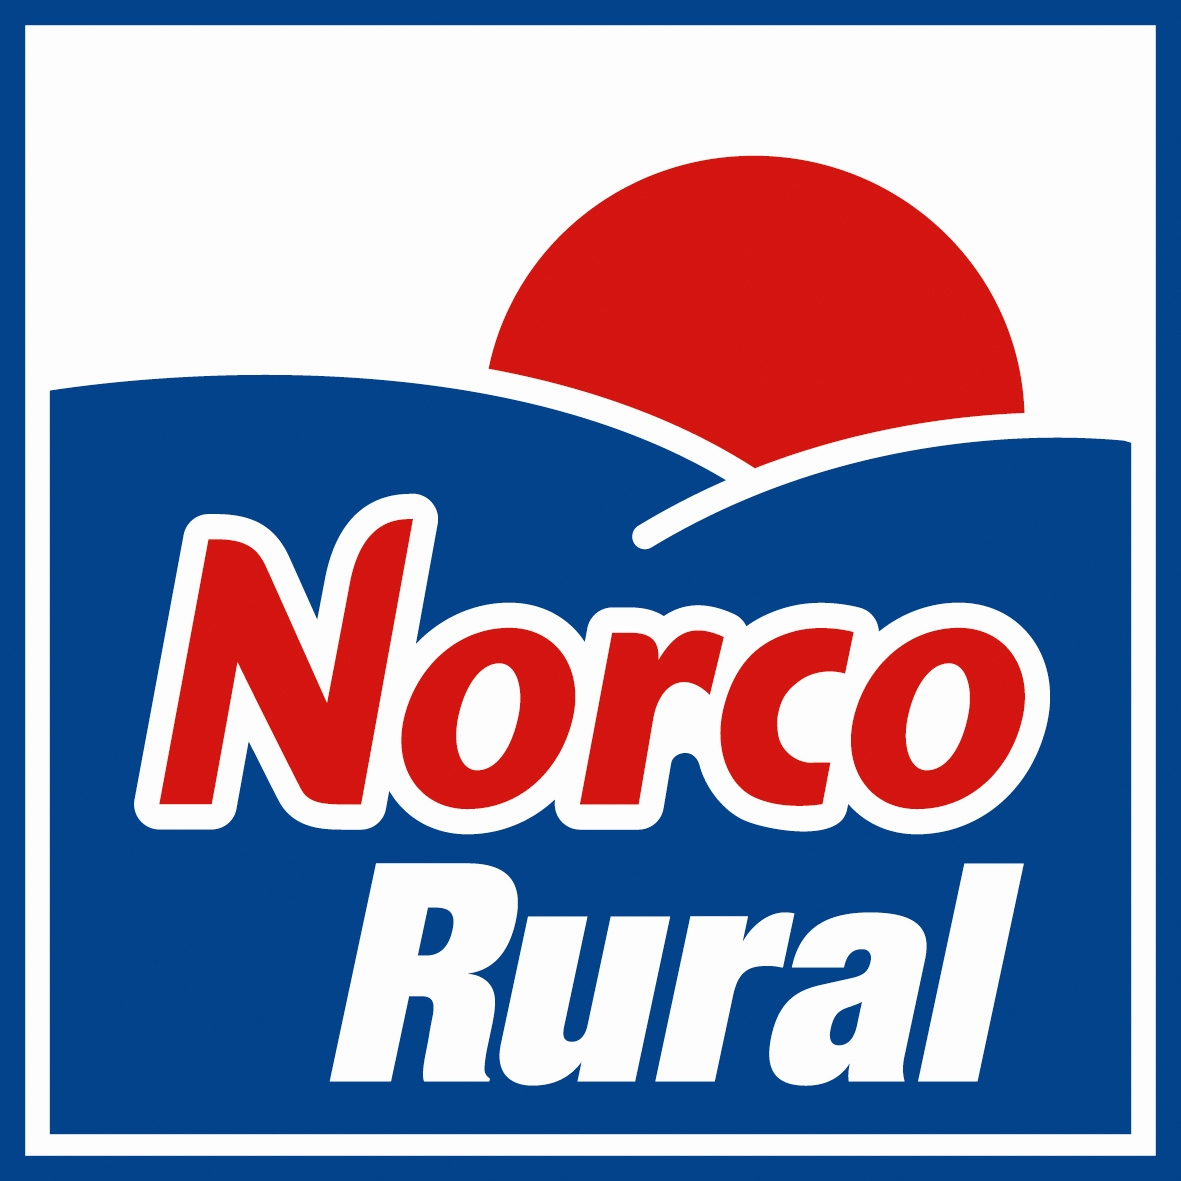 norco-rural-square.jpg